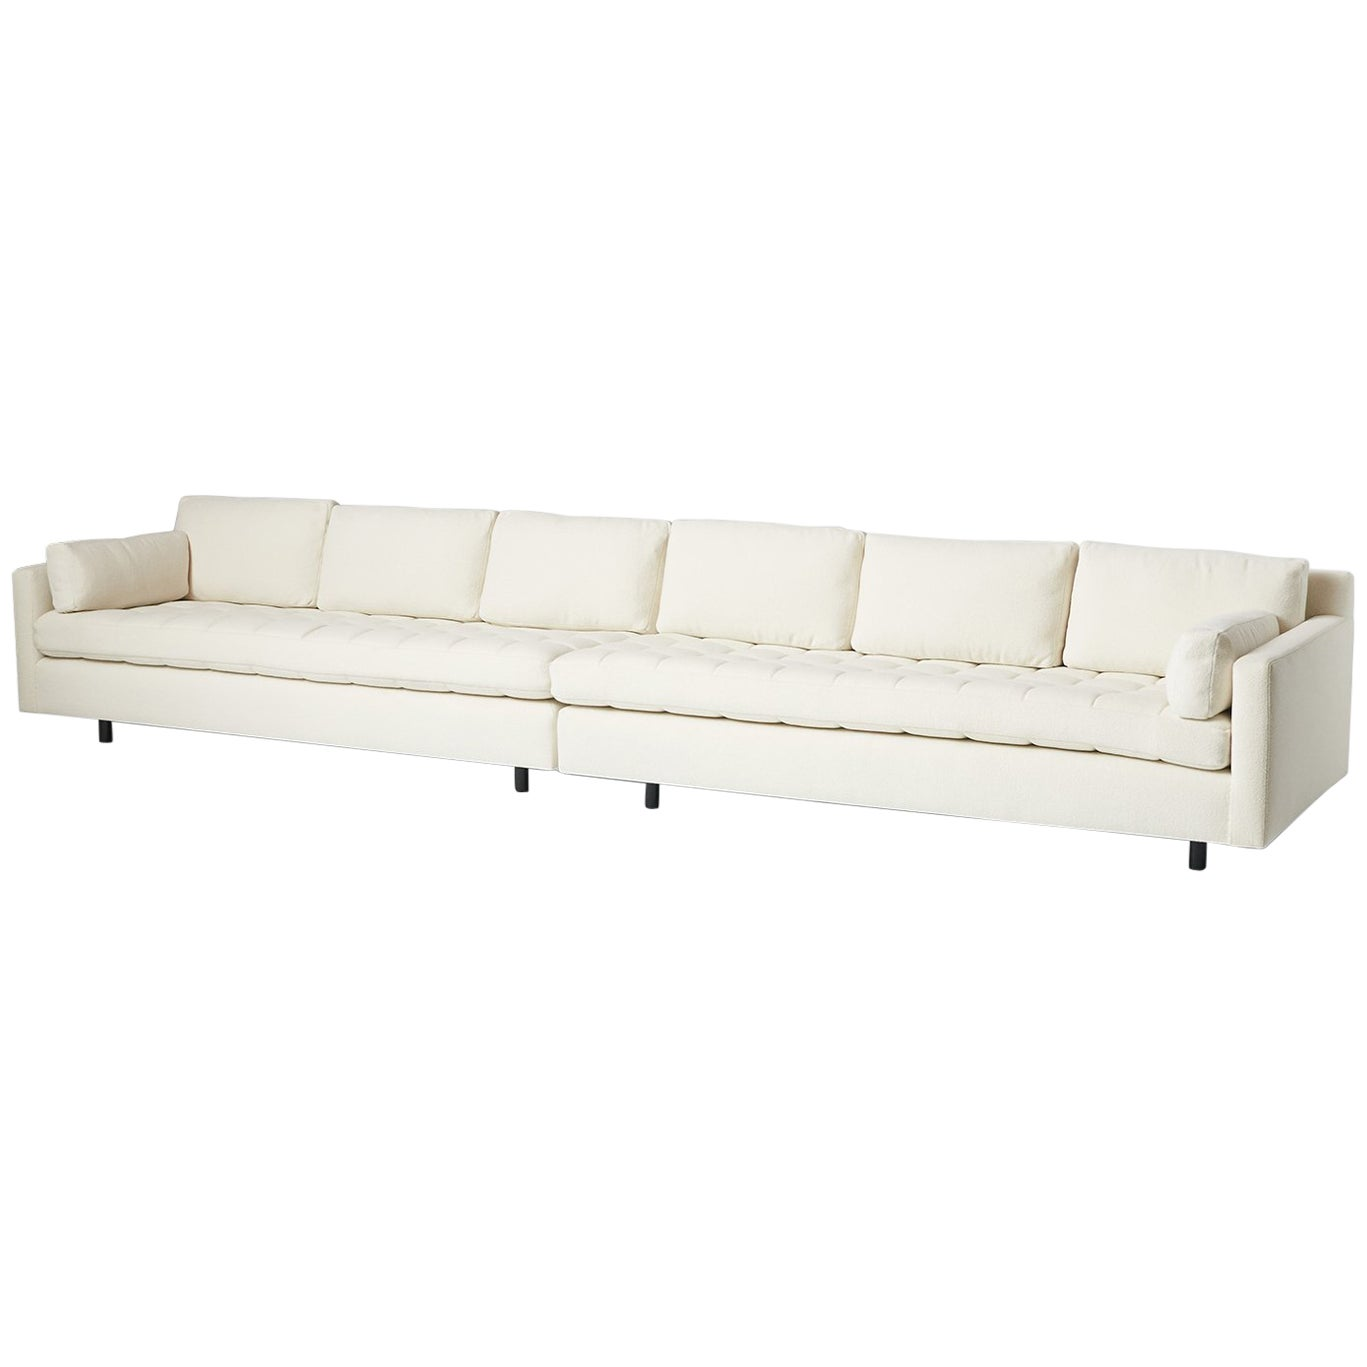 Two-Part Sofa by Harvey Probber